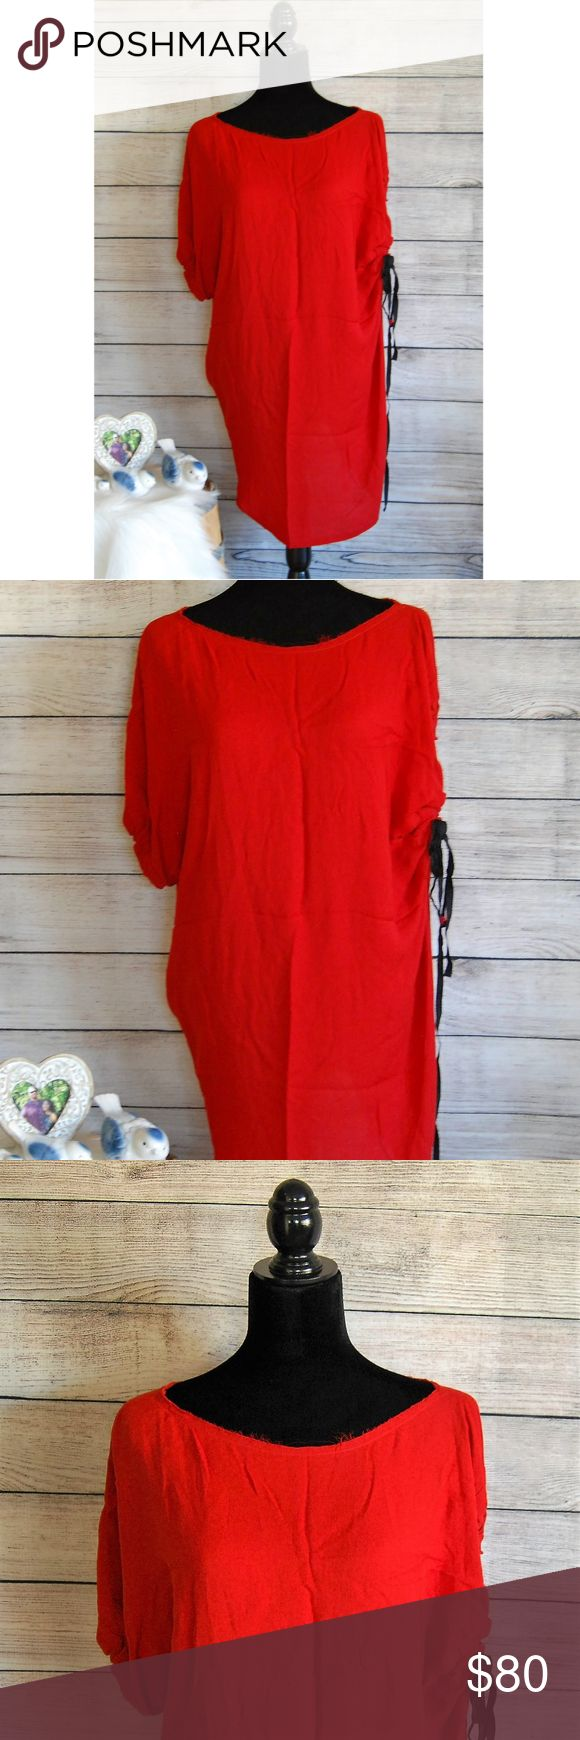 A.L.C. Red Tunic Style Dress A.L.C Red Tunic Dress Good Used Condition It has unfinished hemlines around neck and bottom of the dress. Sleeve is normal on one side the other side can be adjusted and tied to give it a more unique look. Size 4. No rips, stains, holes, or snags. Feel free to message me with any questions about this item. Comes from a pet free/smoke free home. A.L.C. Dresses Midi